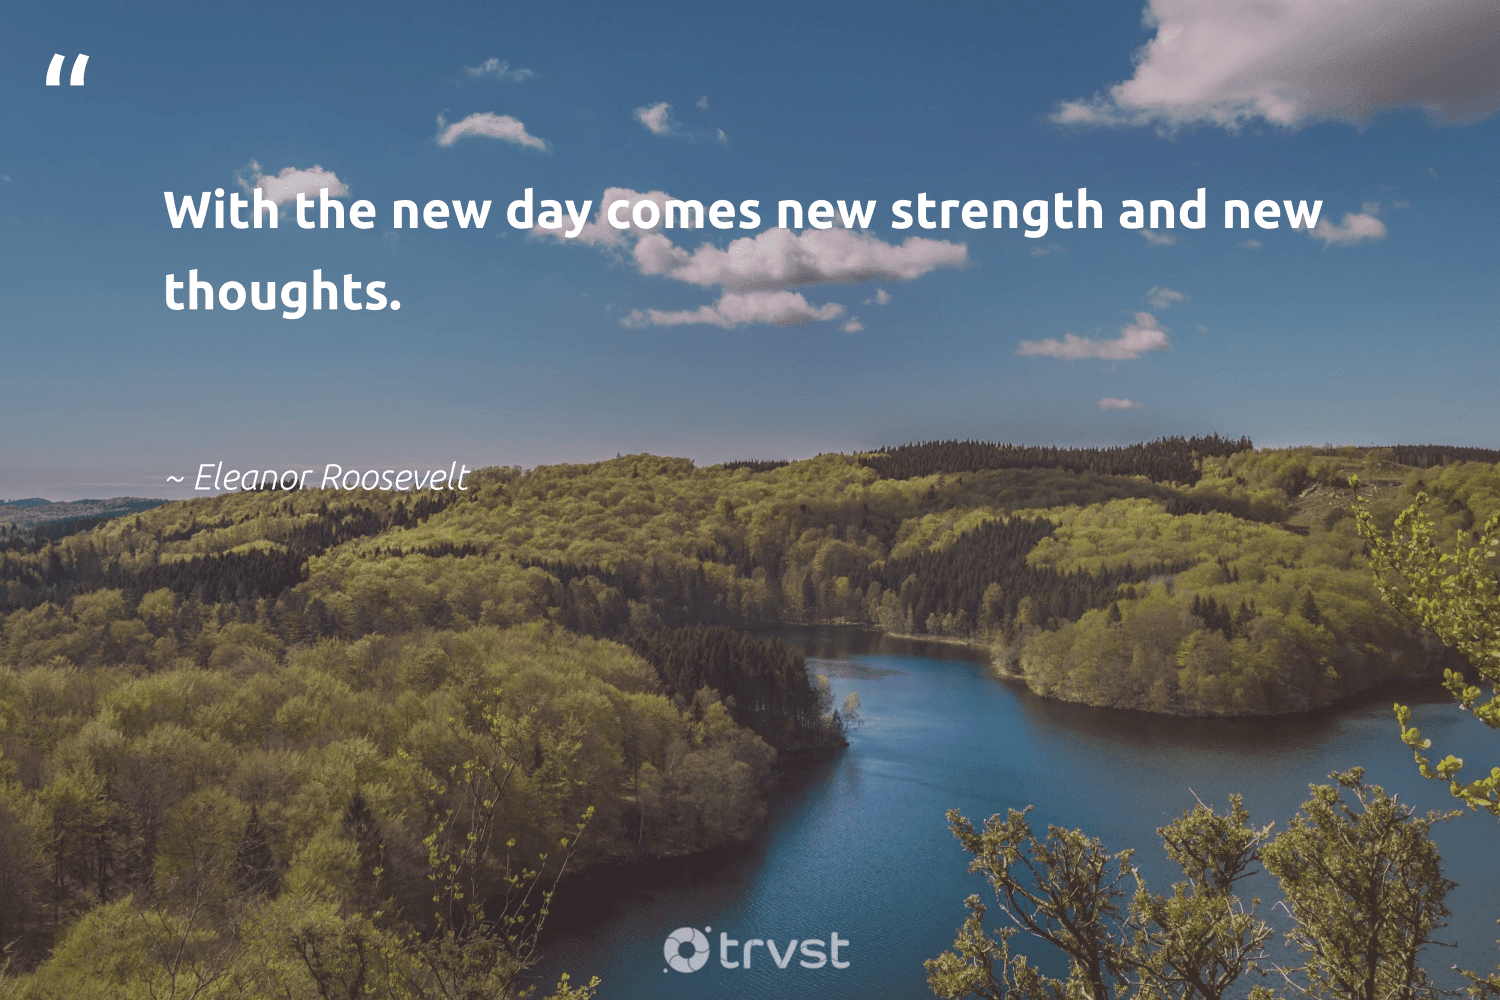 """""""With the new day comes new strength and new thoughts.""""  - Eleanor Roosevelt #trvst #quotes #softskills #socialimpact #nevergiveup #dogood #futureofwork #dotherightthing #begreat #takeaction #thinkgreen #planetearthfirst"""